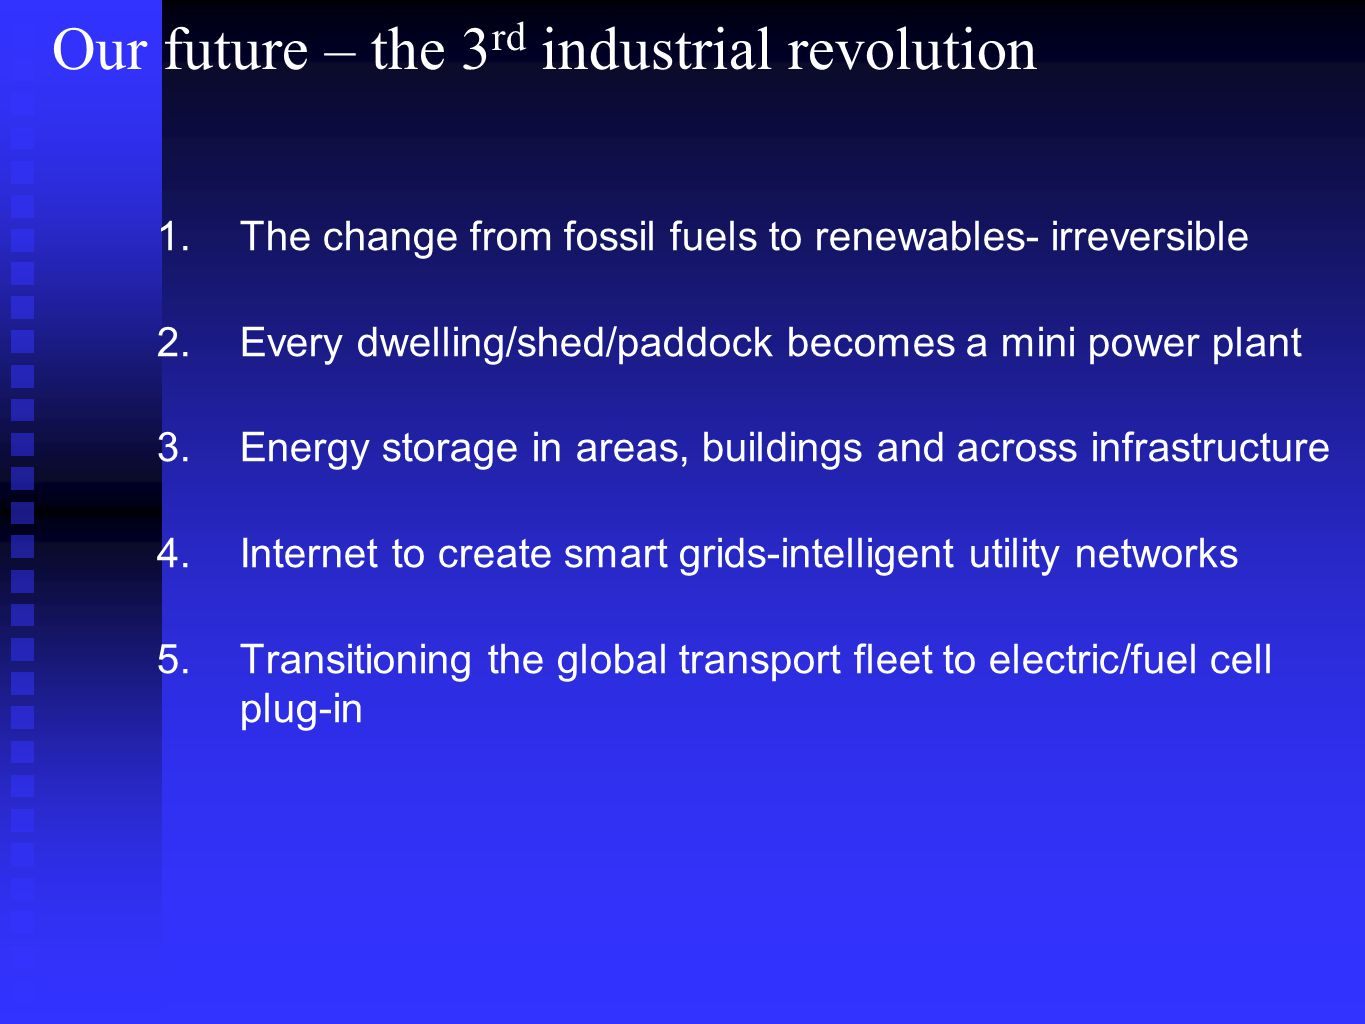 Our future – the 3 rd industrial revolution 1.The change from fossil fuels to renewables- irreversible 2.Every dwelling/shed/paddock becomes a mini power plant 3.Energy storage in areas, buildings and across infrastructure 4.Internet to create smart grids-intelligent utility networks 5.Transitioning the global transport fleet to electric/fuel cell plug-in